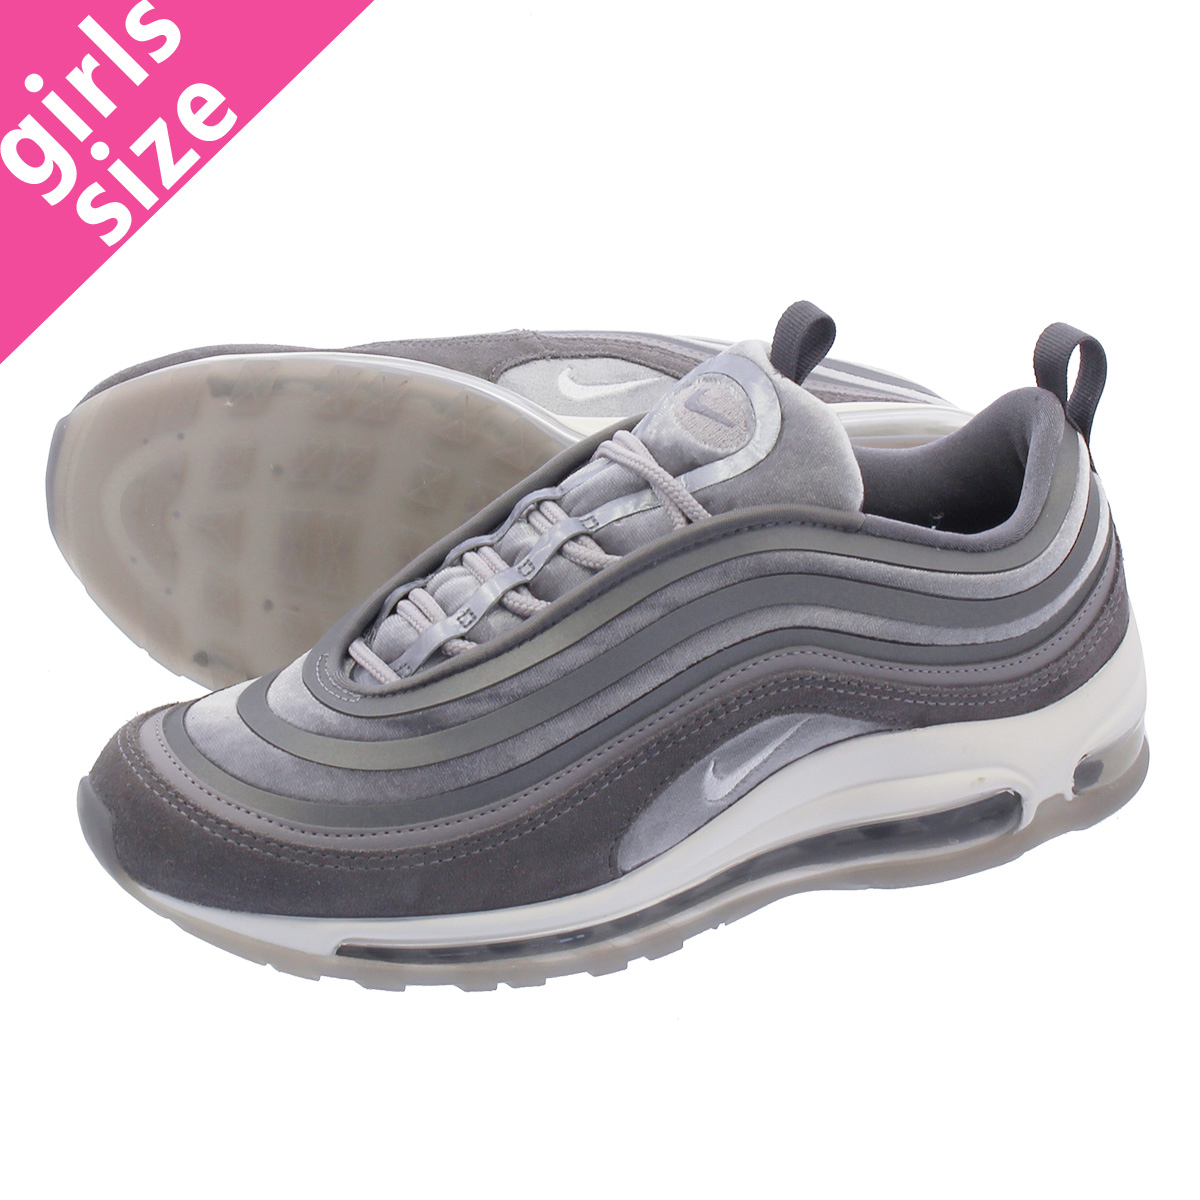 billig Nike Gray Air Max 97 Ultra '17 Lx Women's Shoe spare